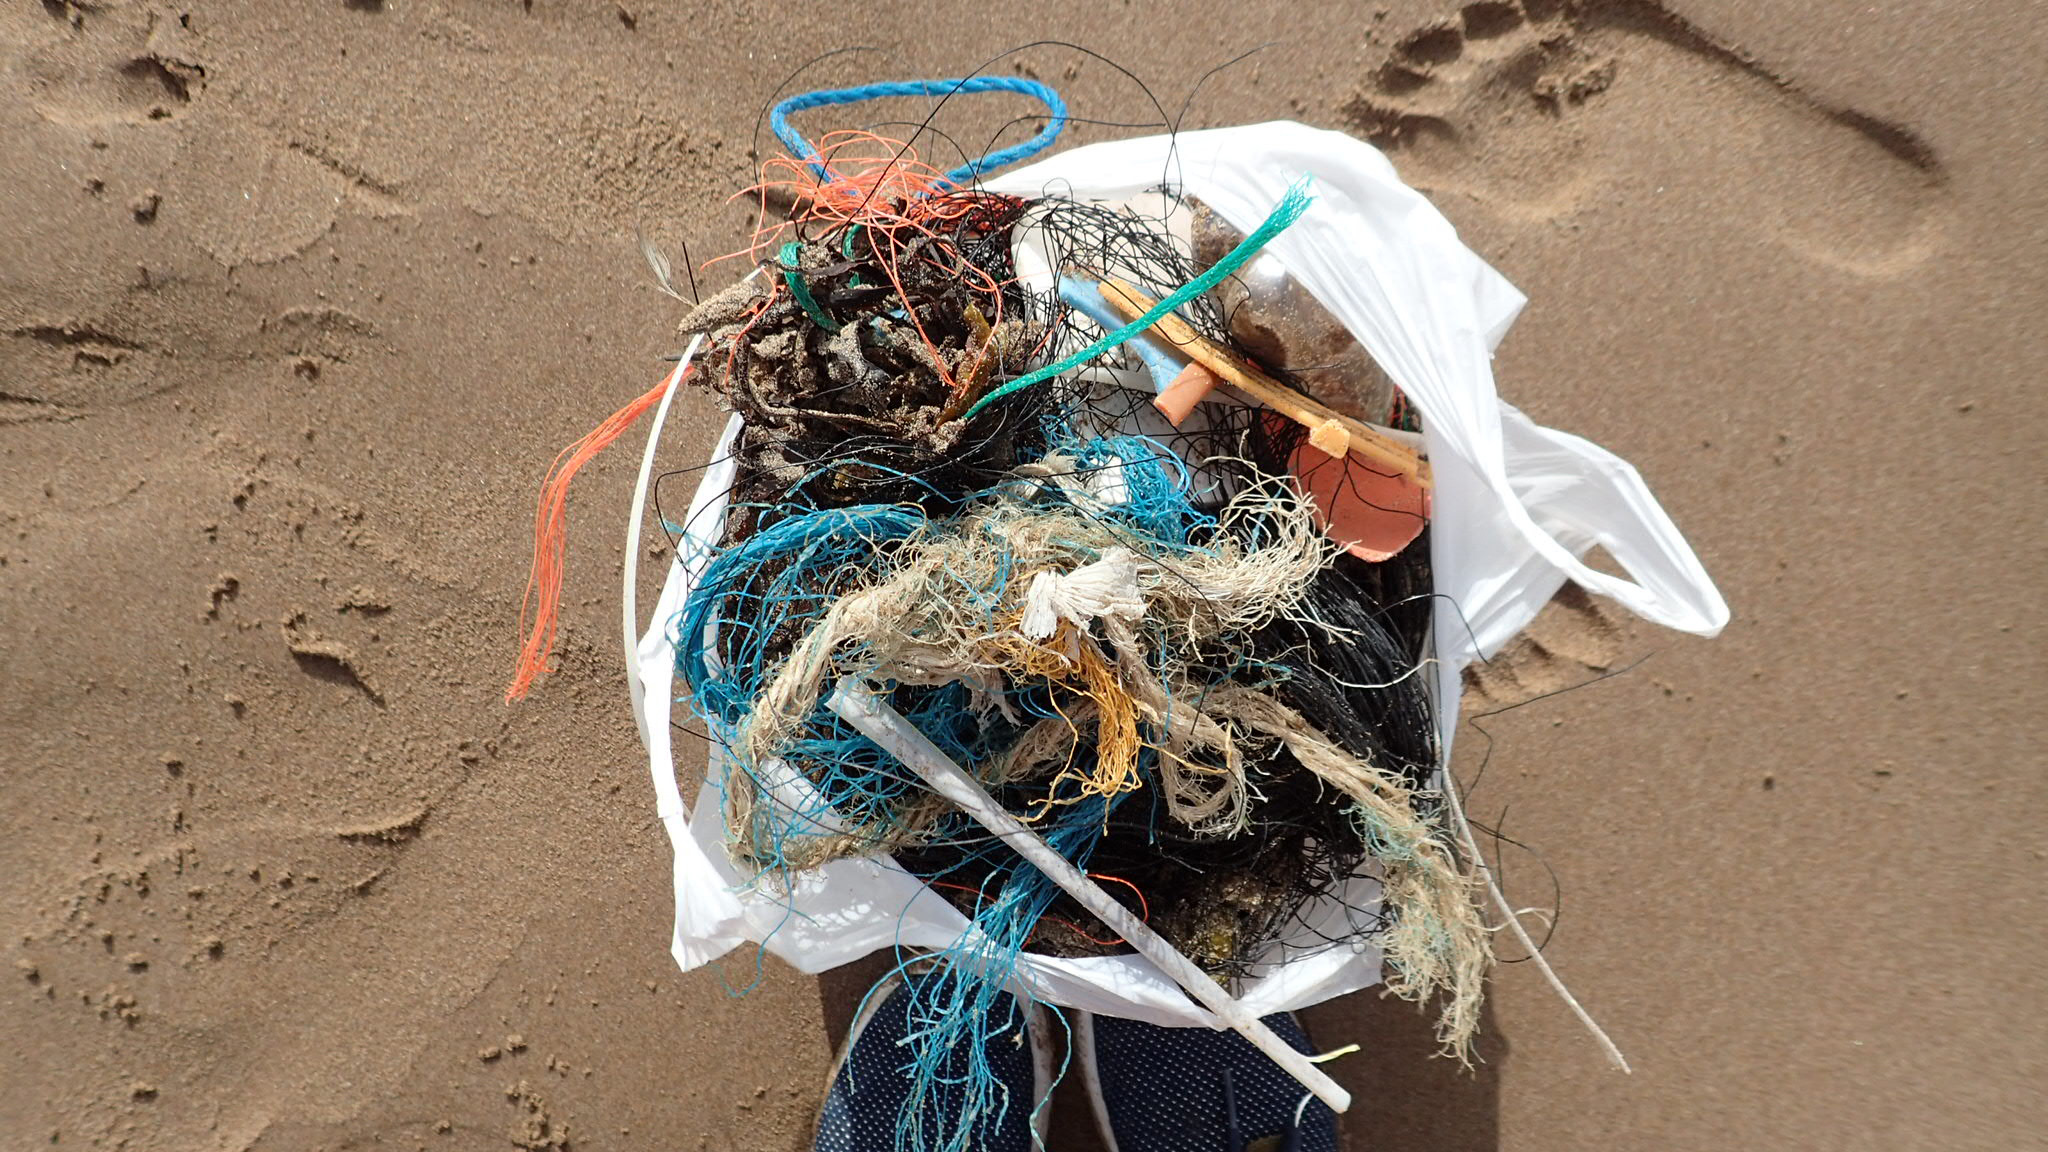 Sam certainly picked up the most plastic on this beach clean